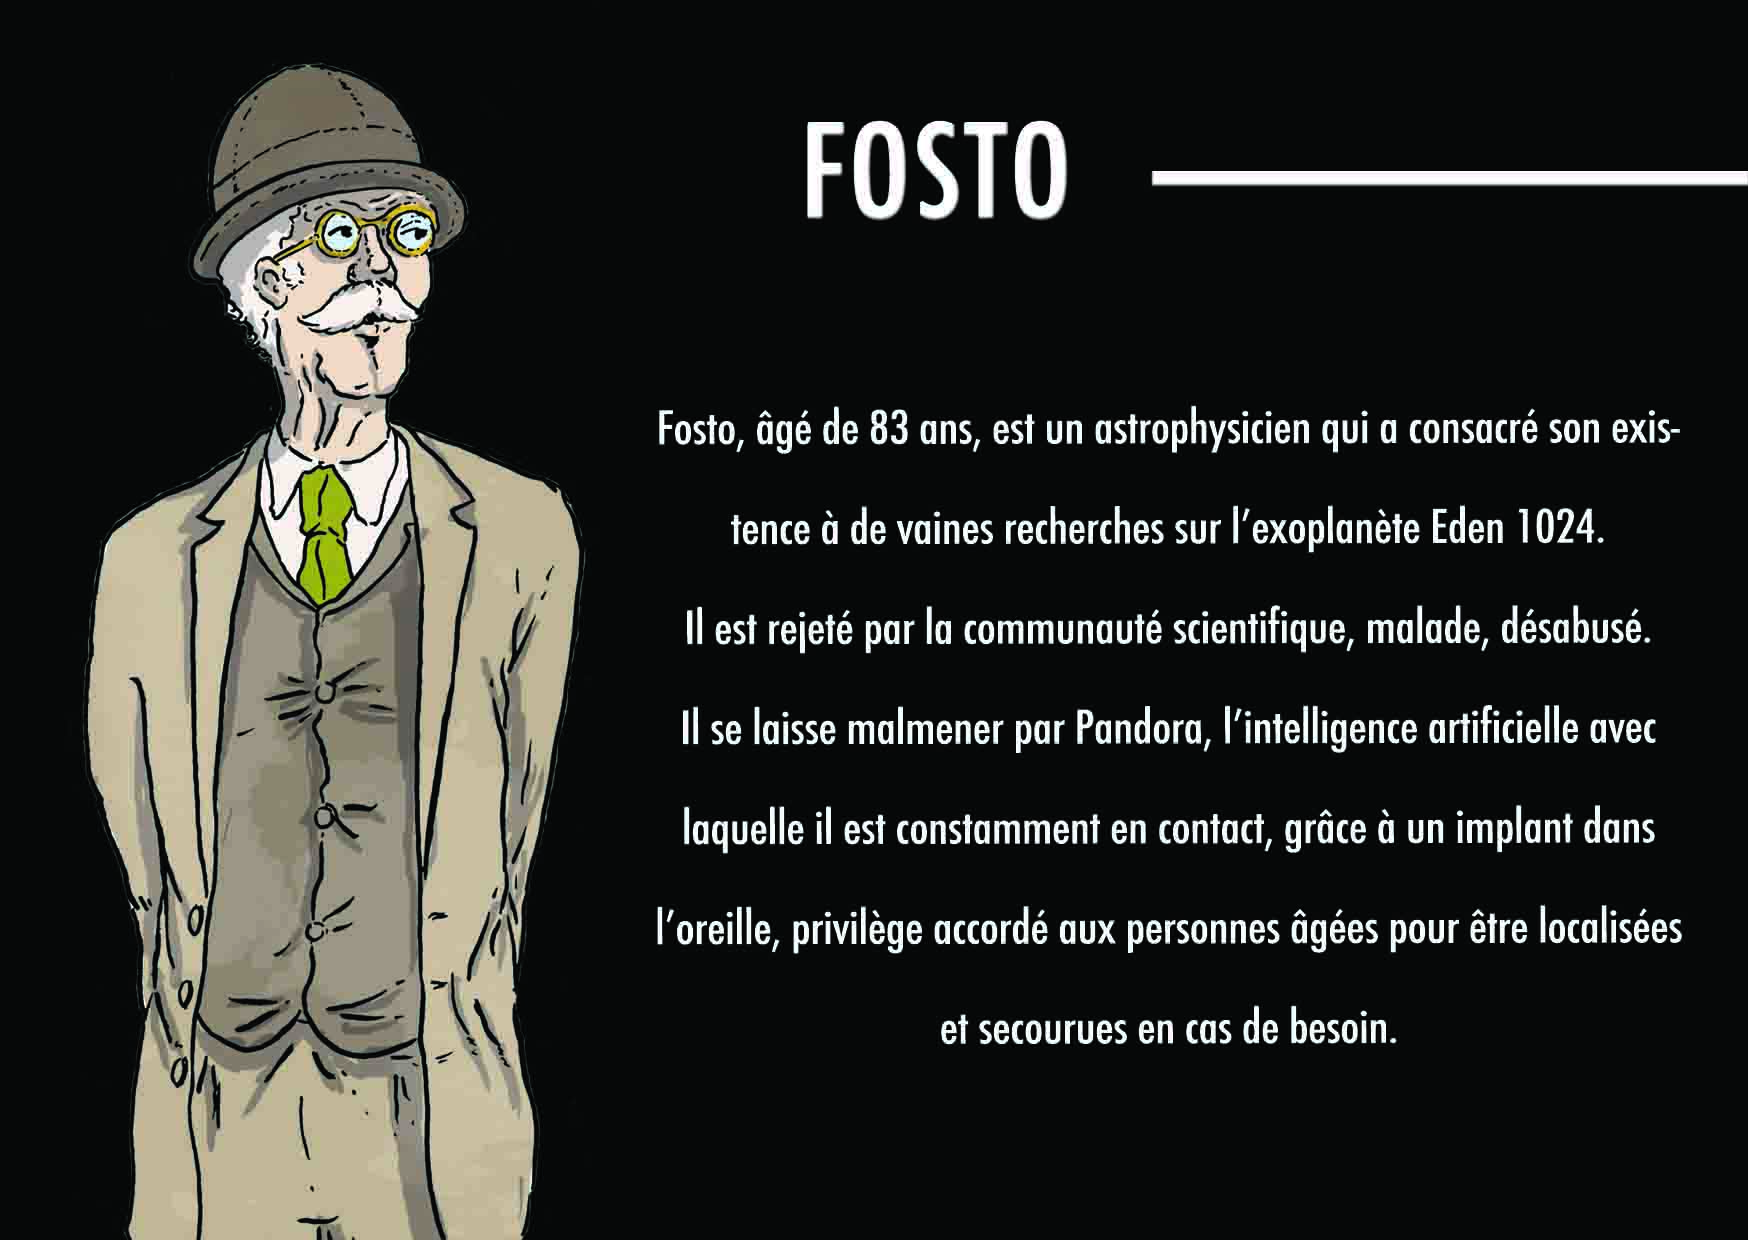 visuel personnage faust bd interactive science fiction